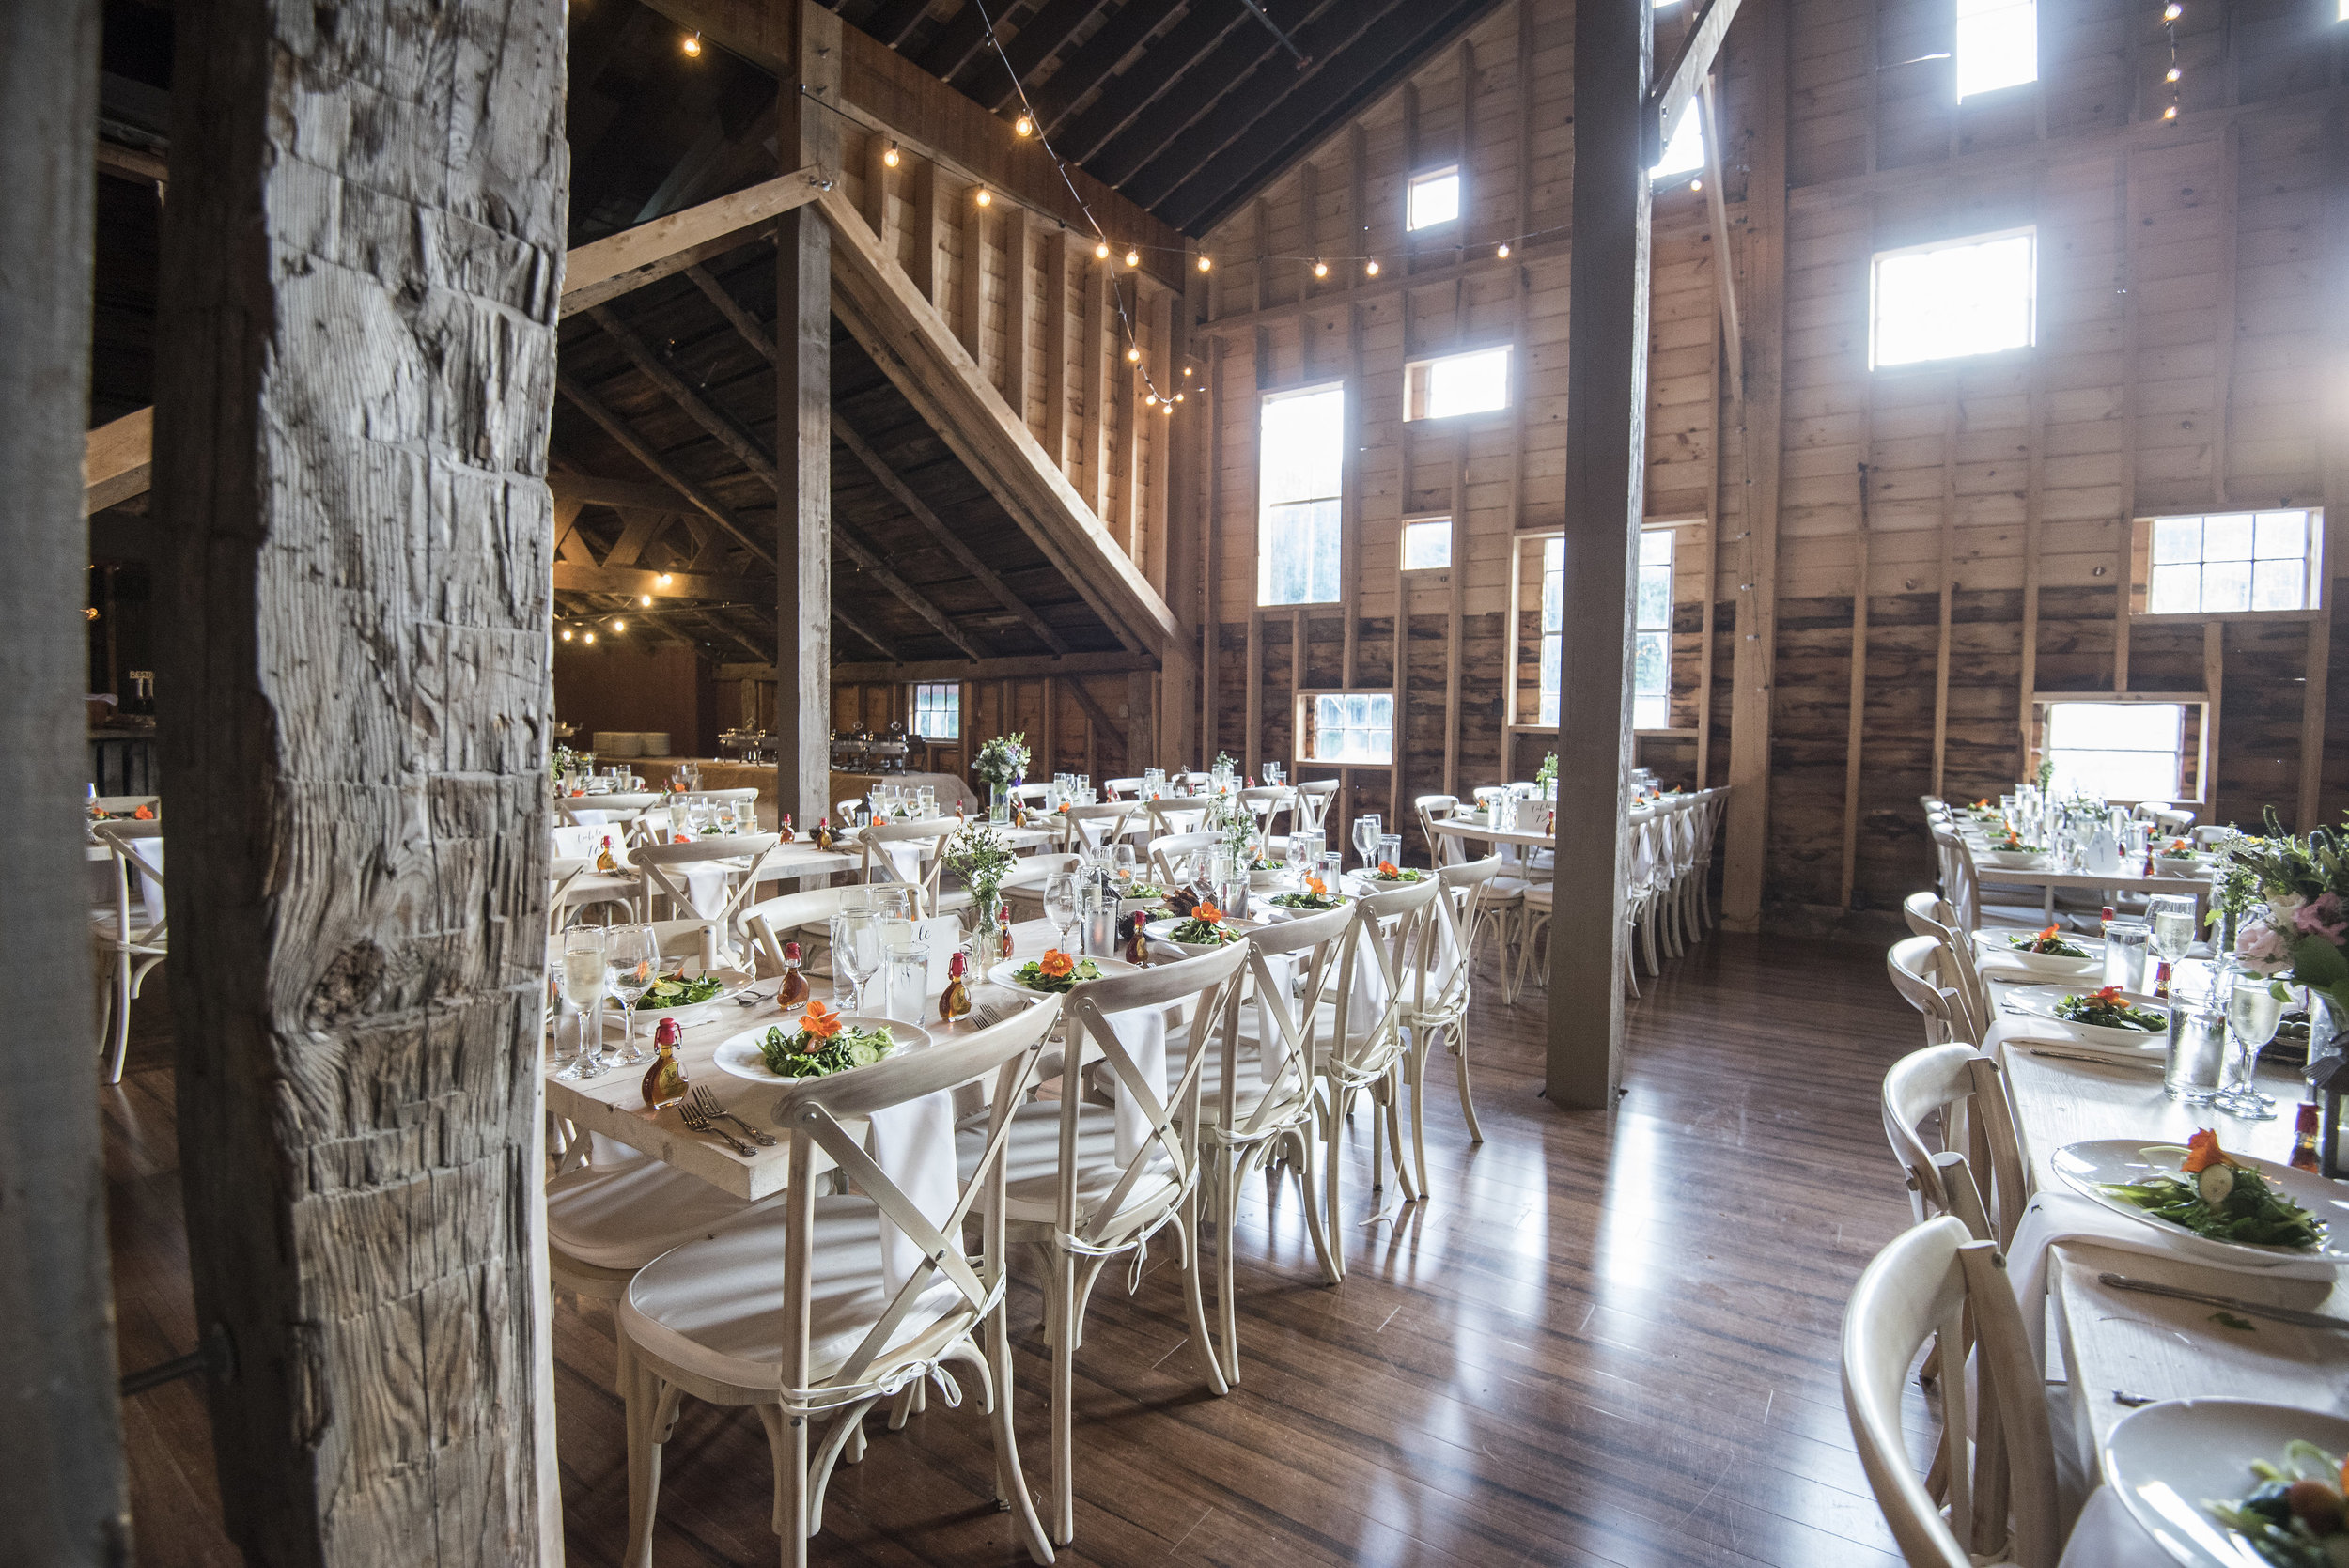 Our historic barn comfortably fits up to 250 guests